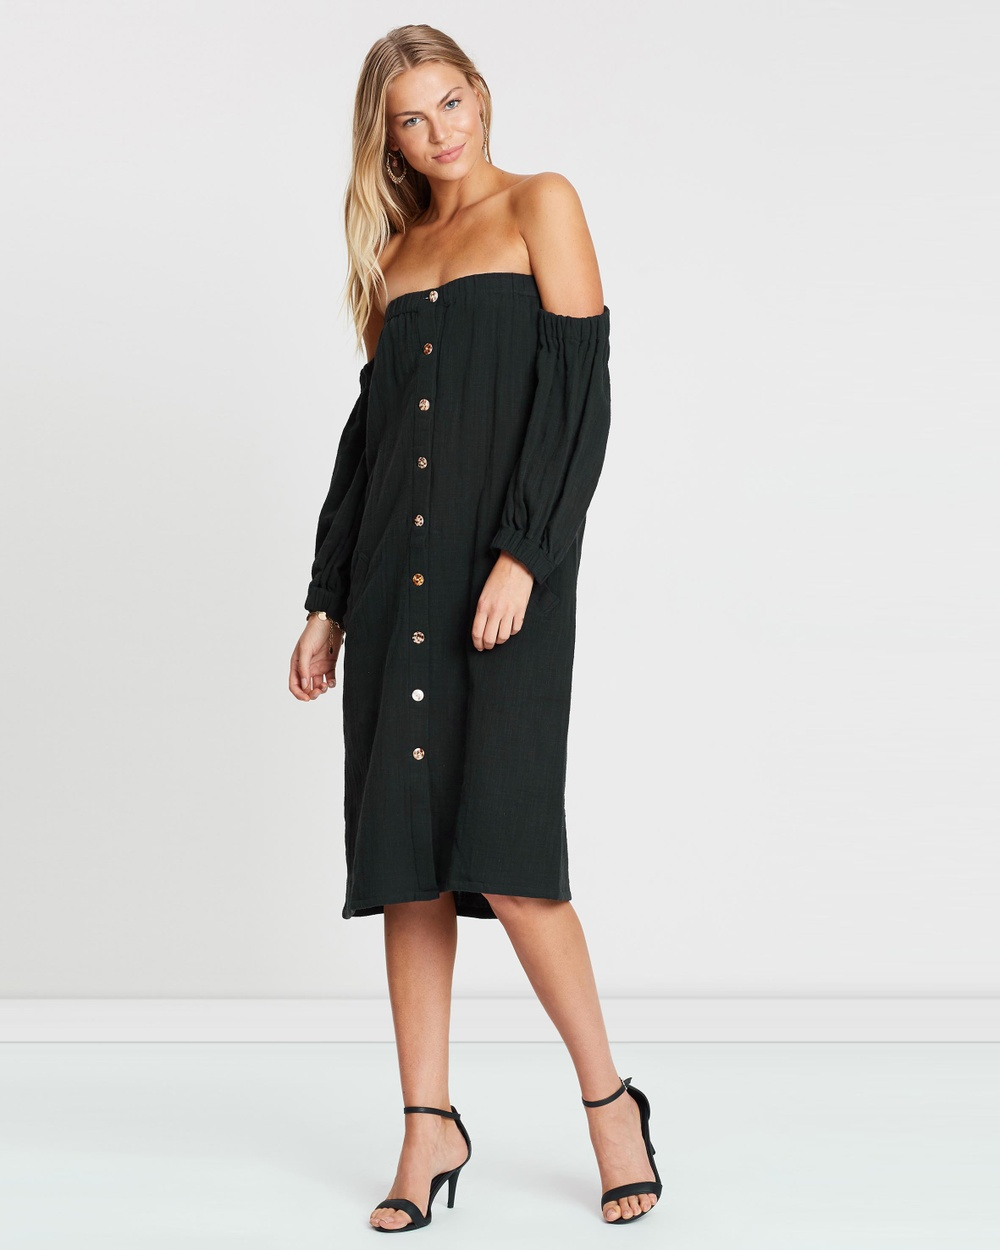 Maurie & Eve Charcoal Real Love Dress